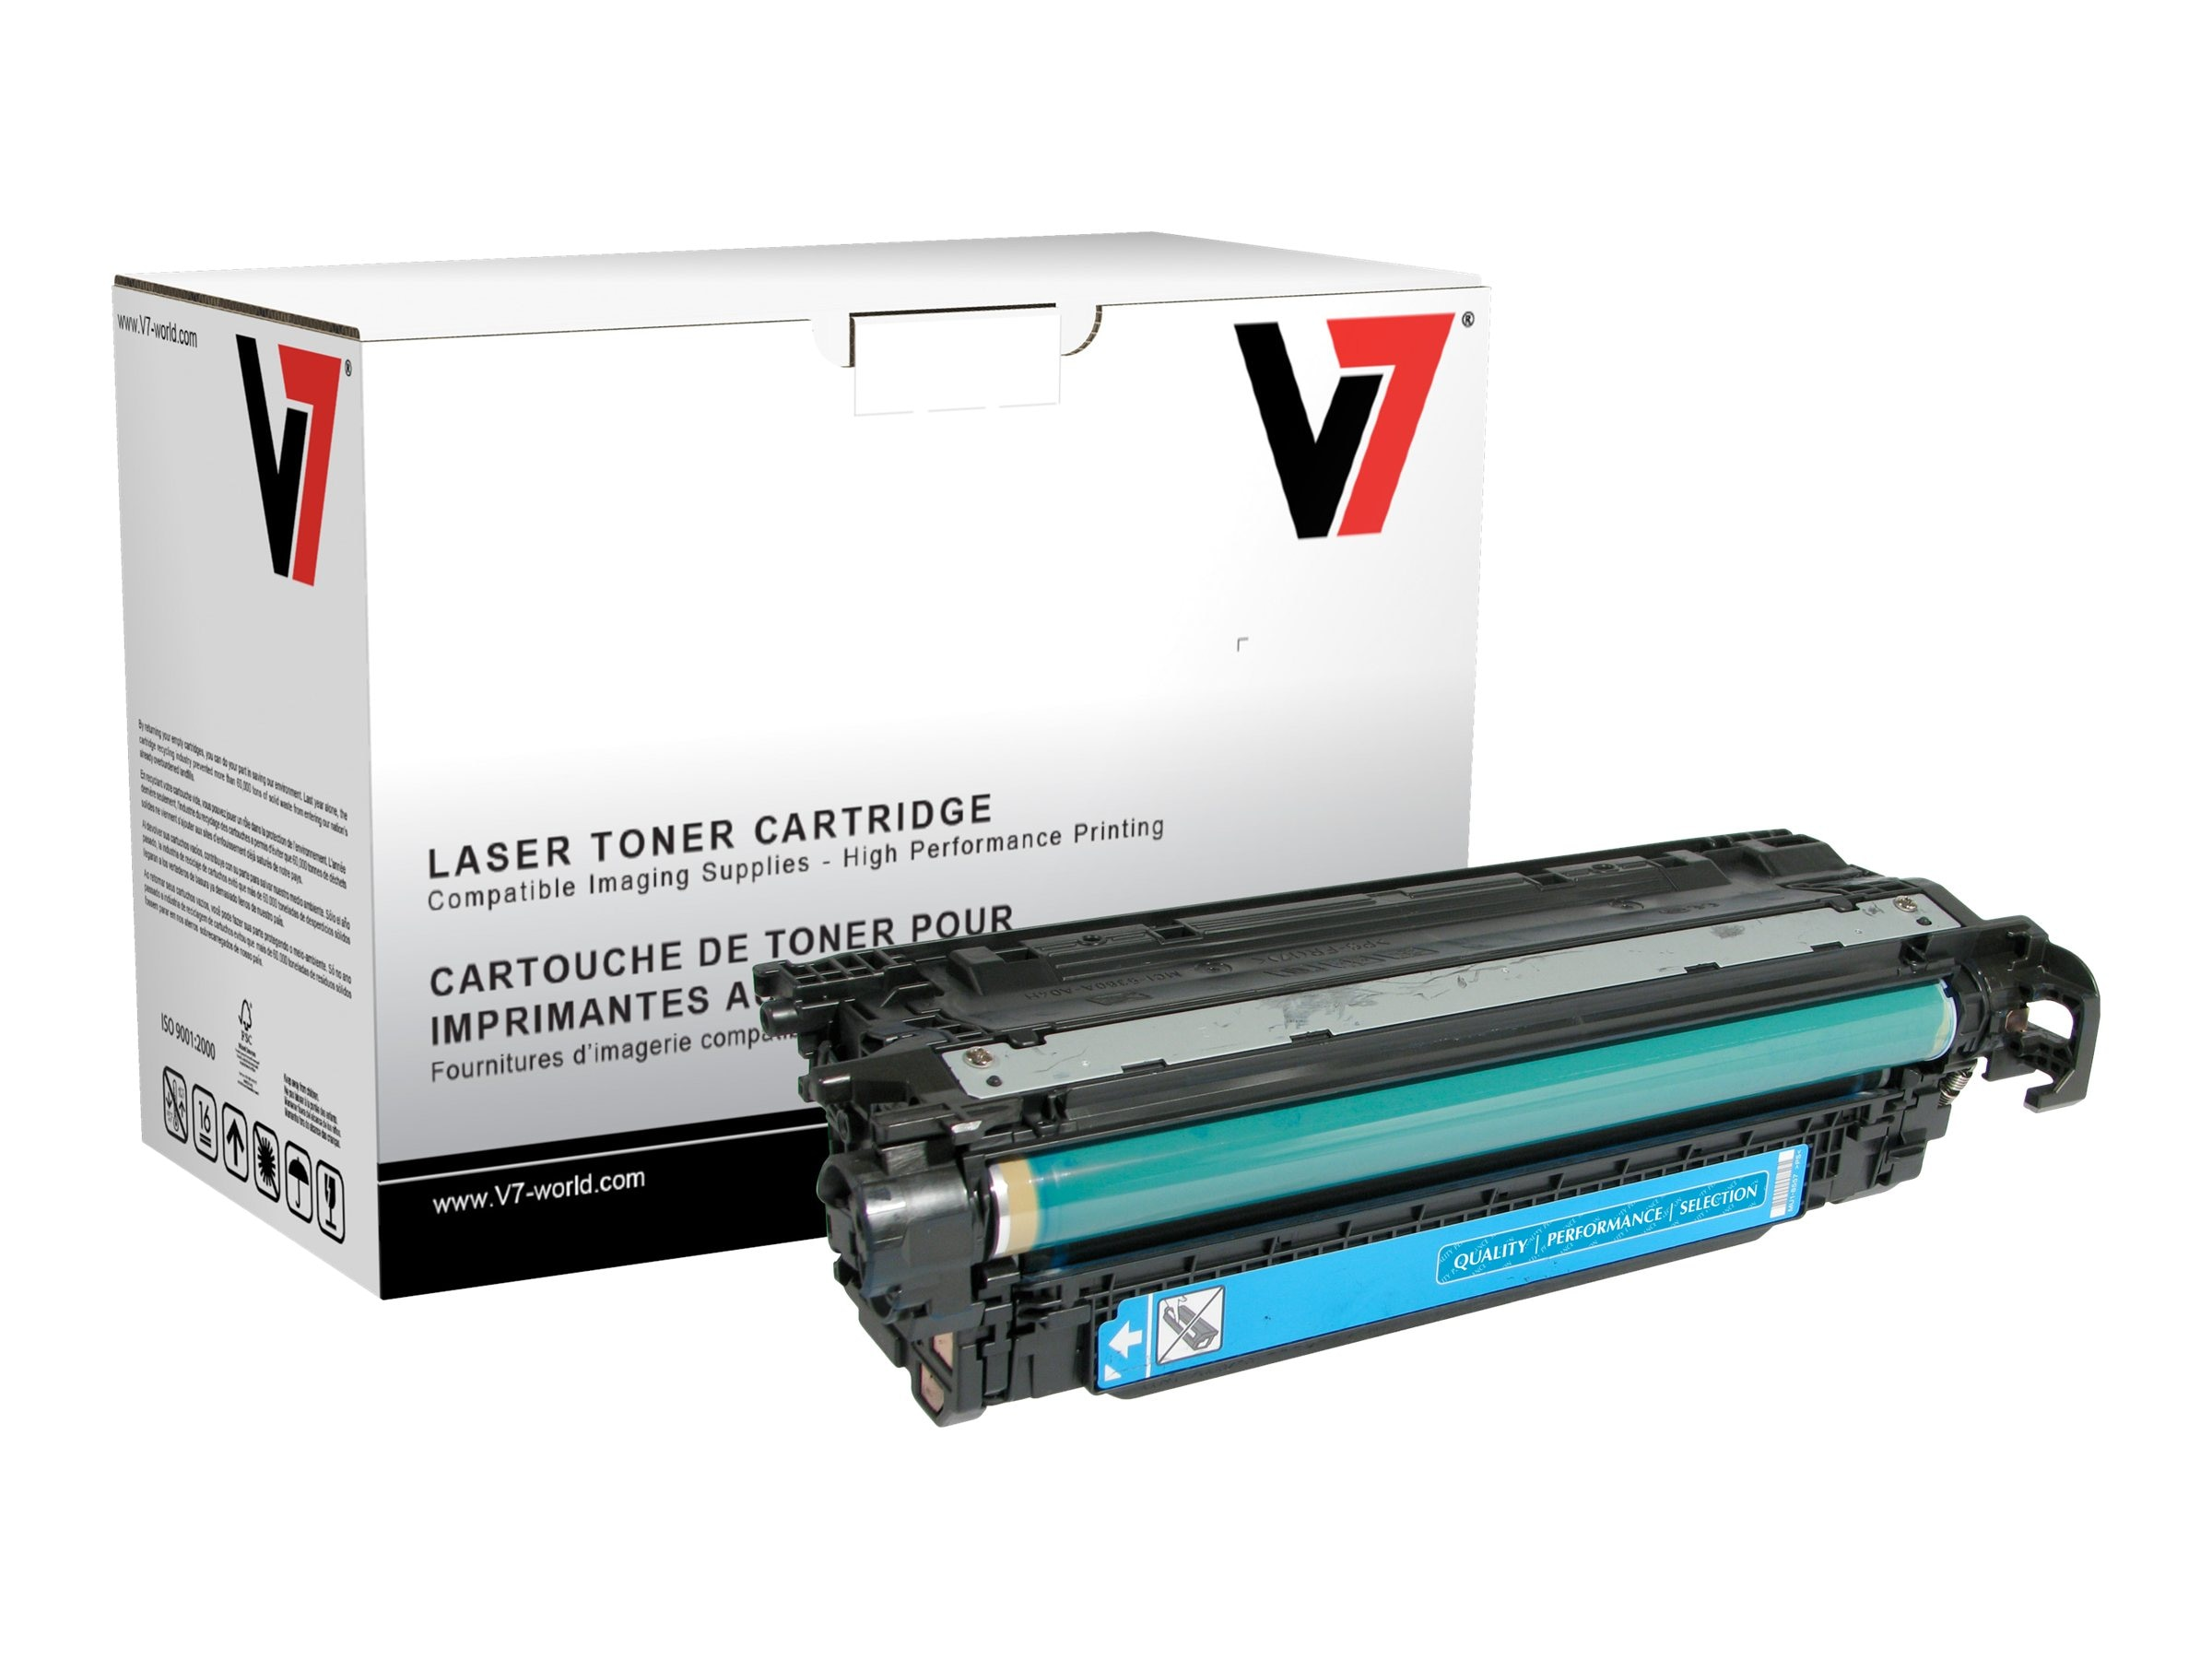 V7 CE251A Cyan Toner Cartridge for HP LaserJet CP3525 (TAA Compliant), THC23525